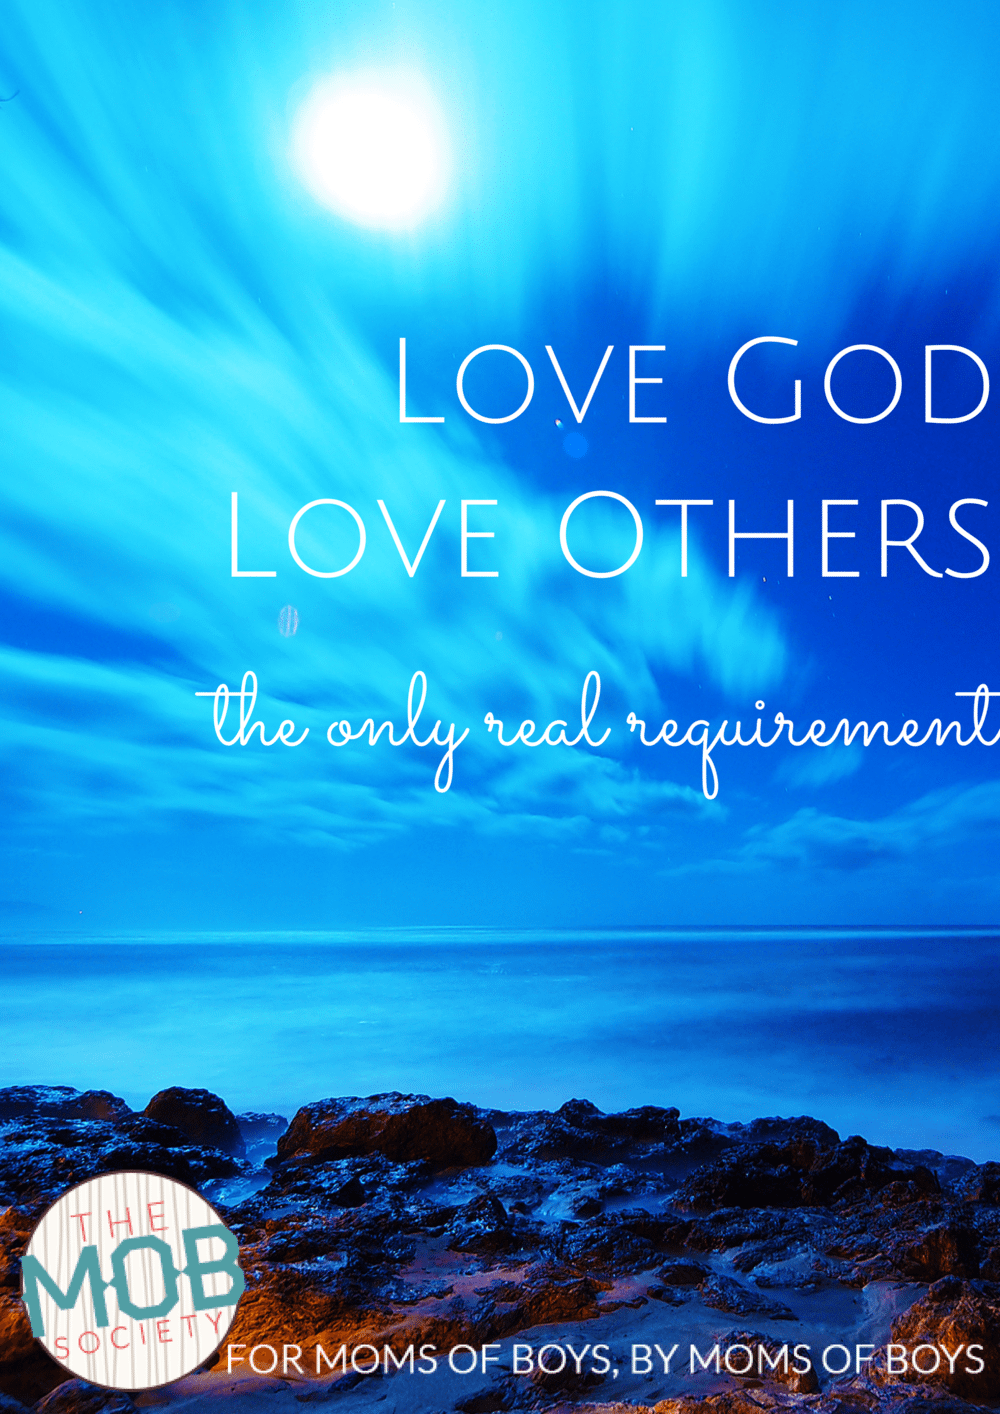 Love God Love Others M. Swanson